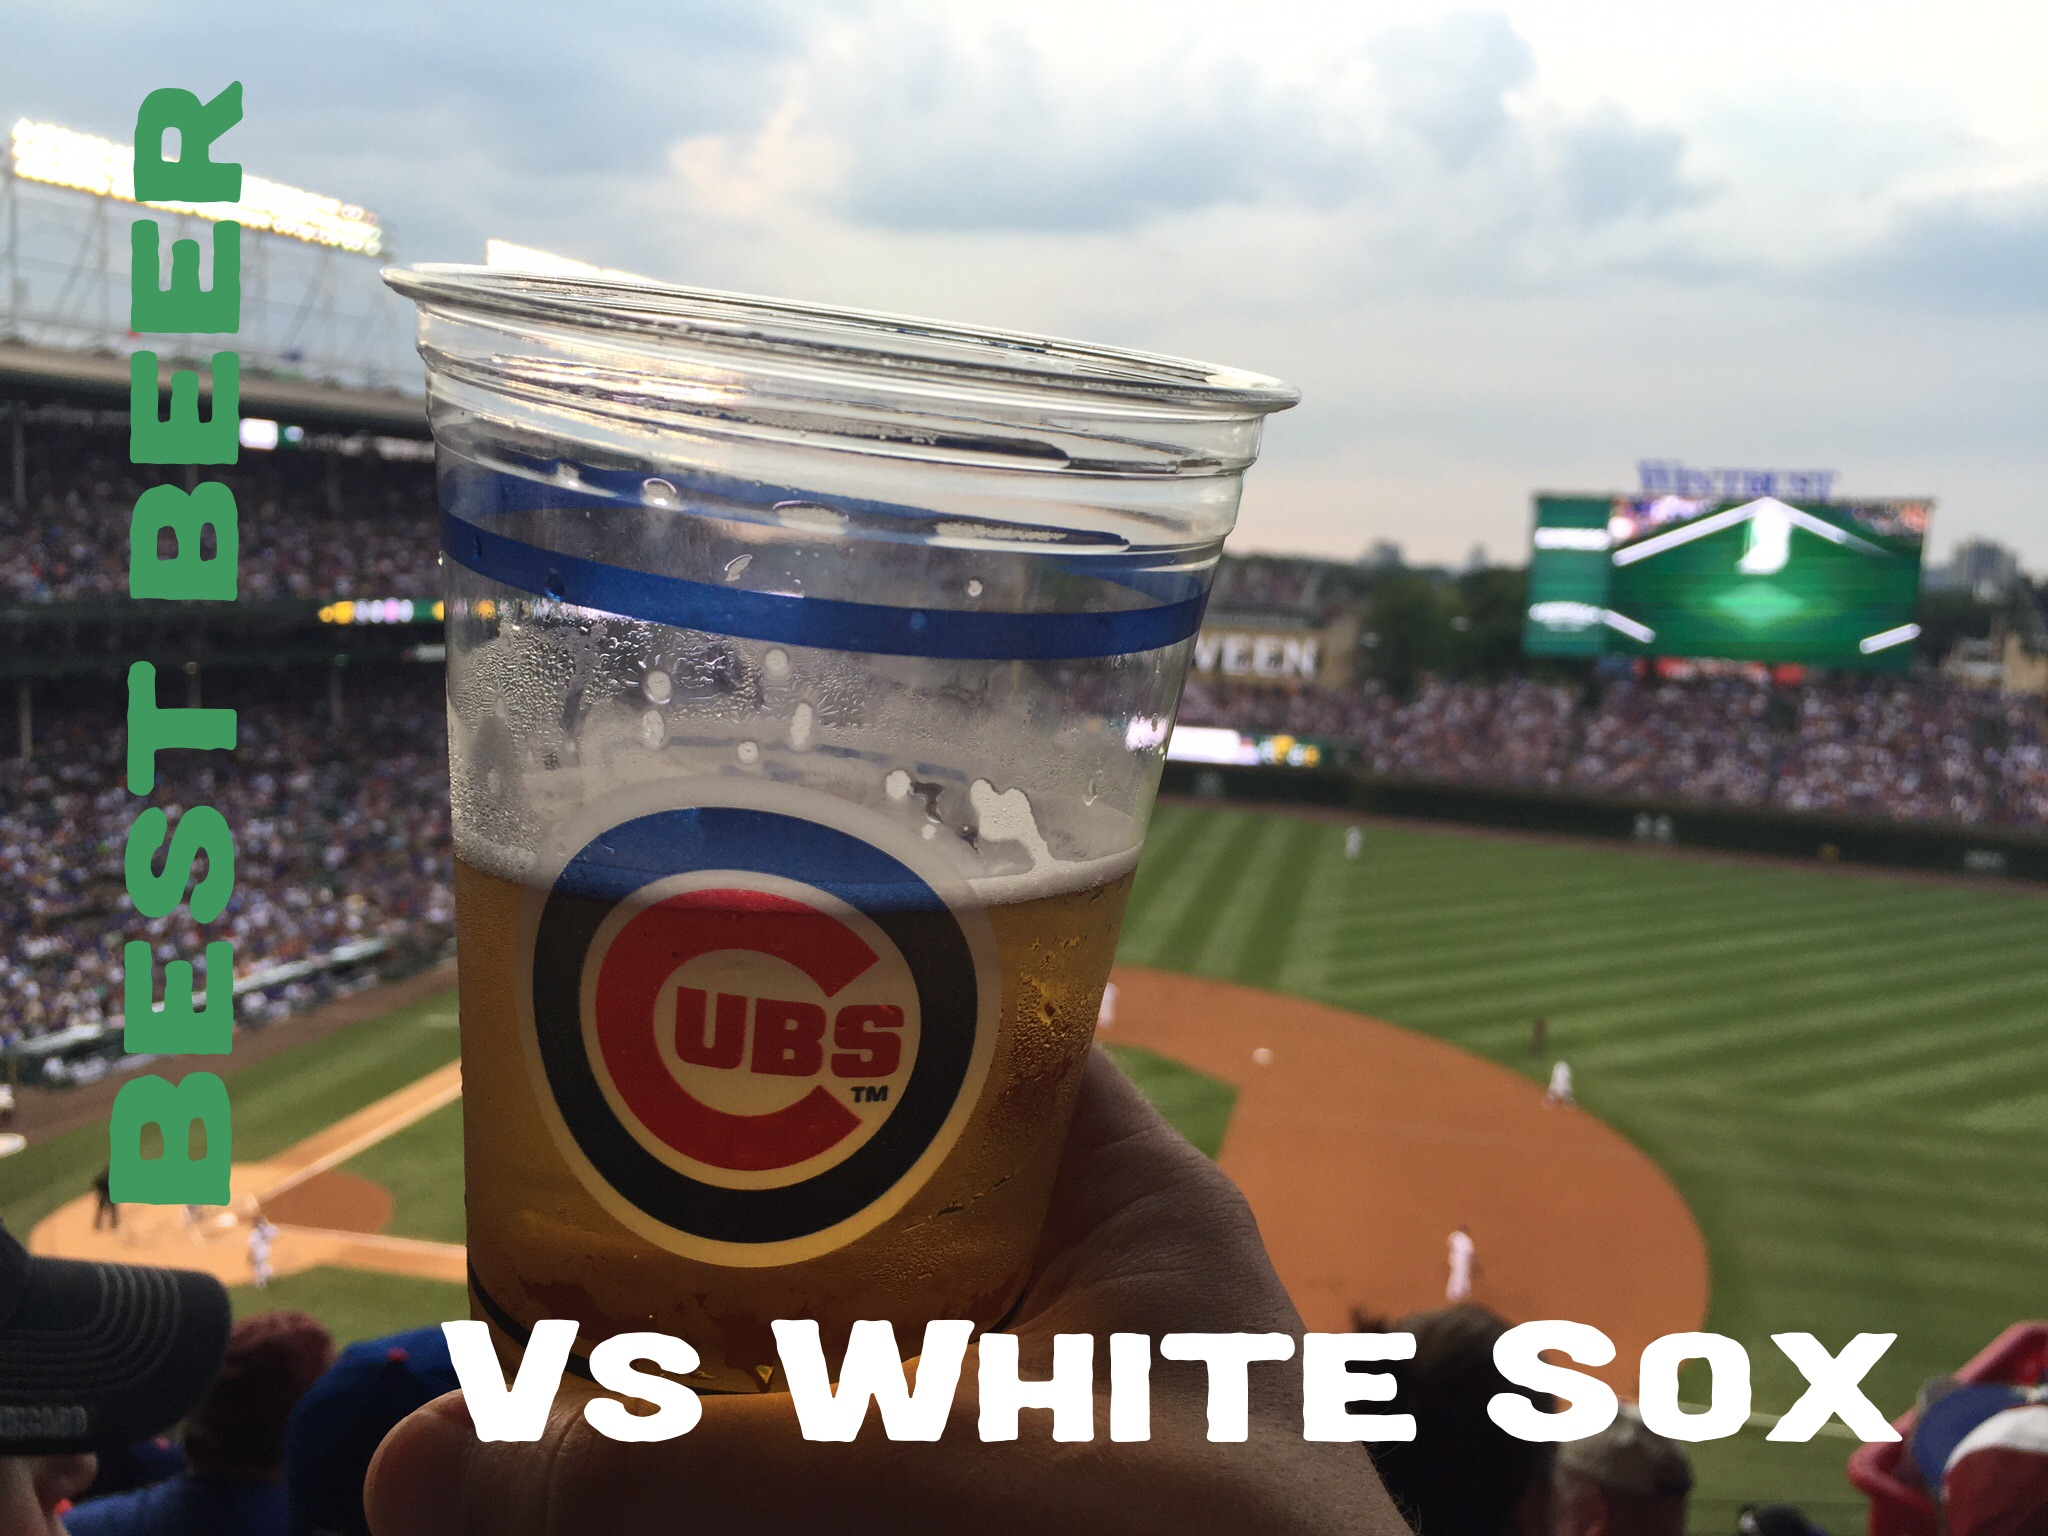 Cubs vs White Sox, a view from the Upper Deck at Wrigley Field. (photo by Kerry Finsand)